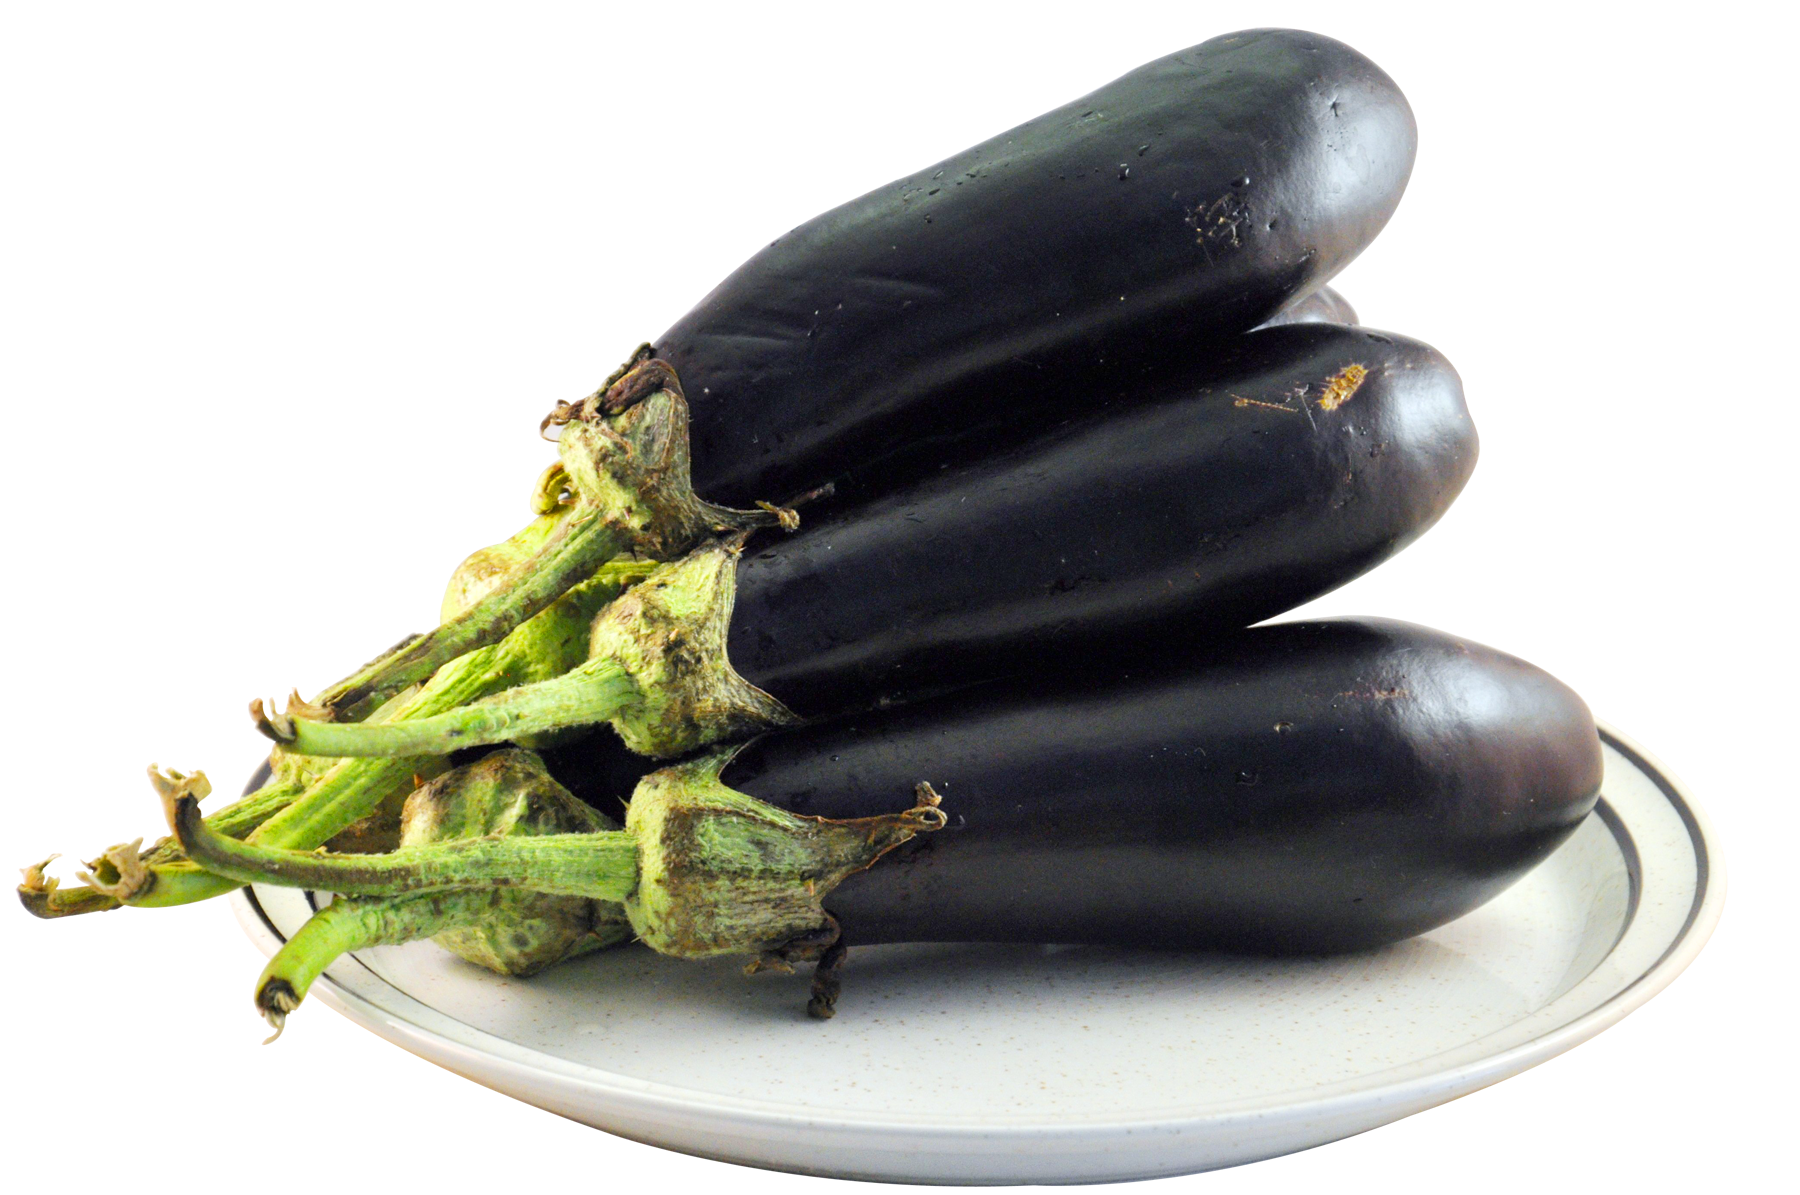 Cuisine Stuffed Aubergines Food Eggplant Vegetable Italian PNG Image